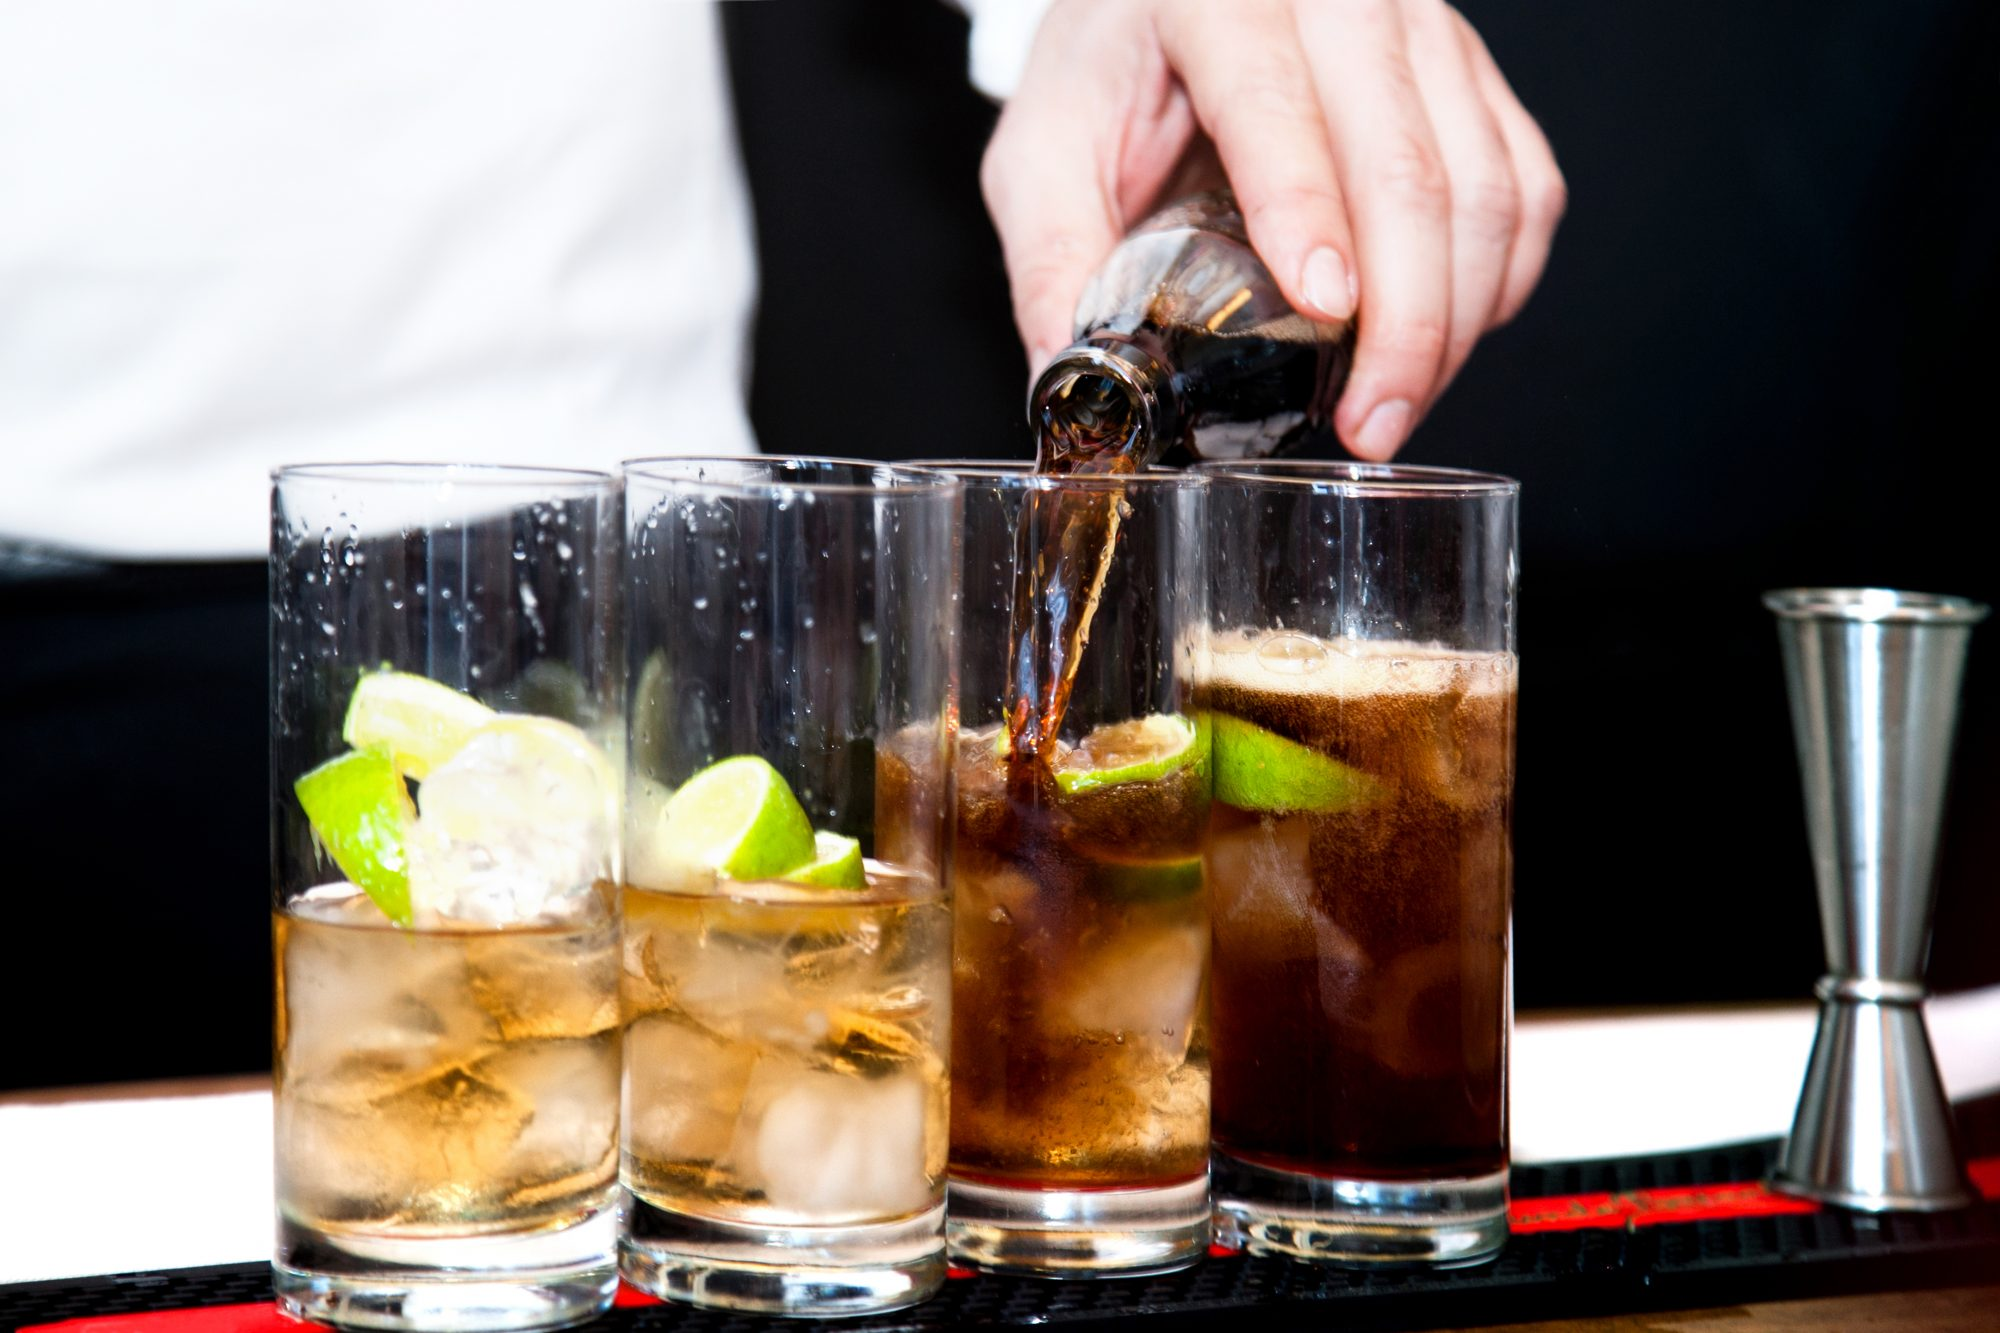 diet-soda-rum-24-things-you-should-never-eat-out